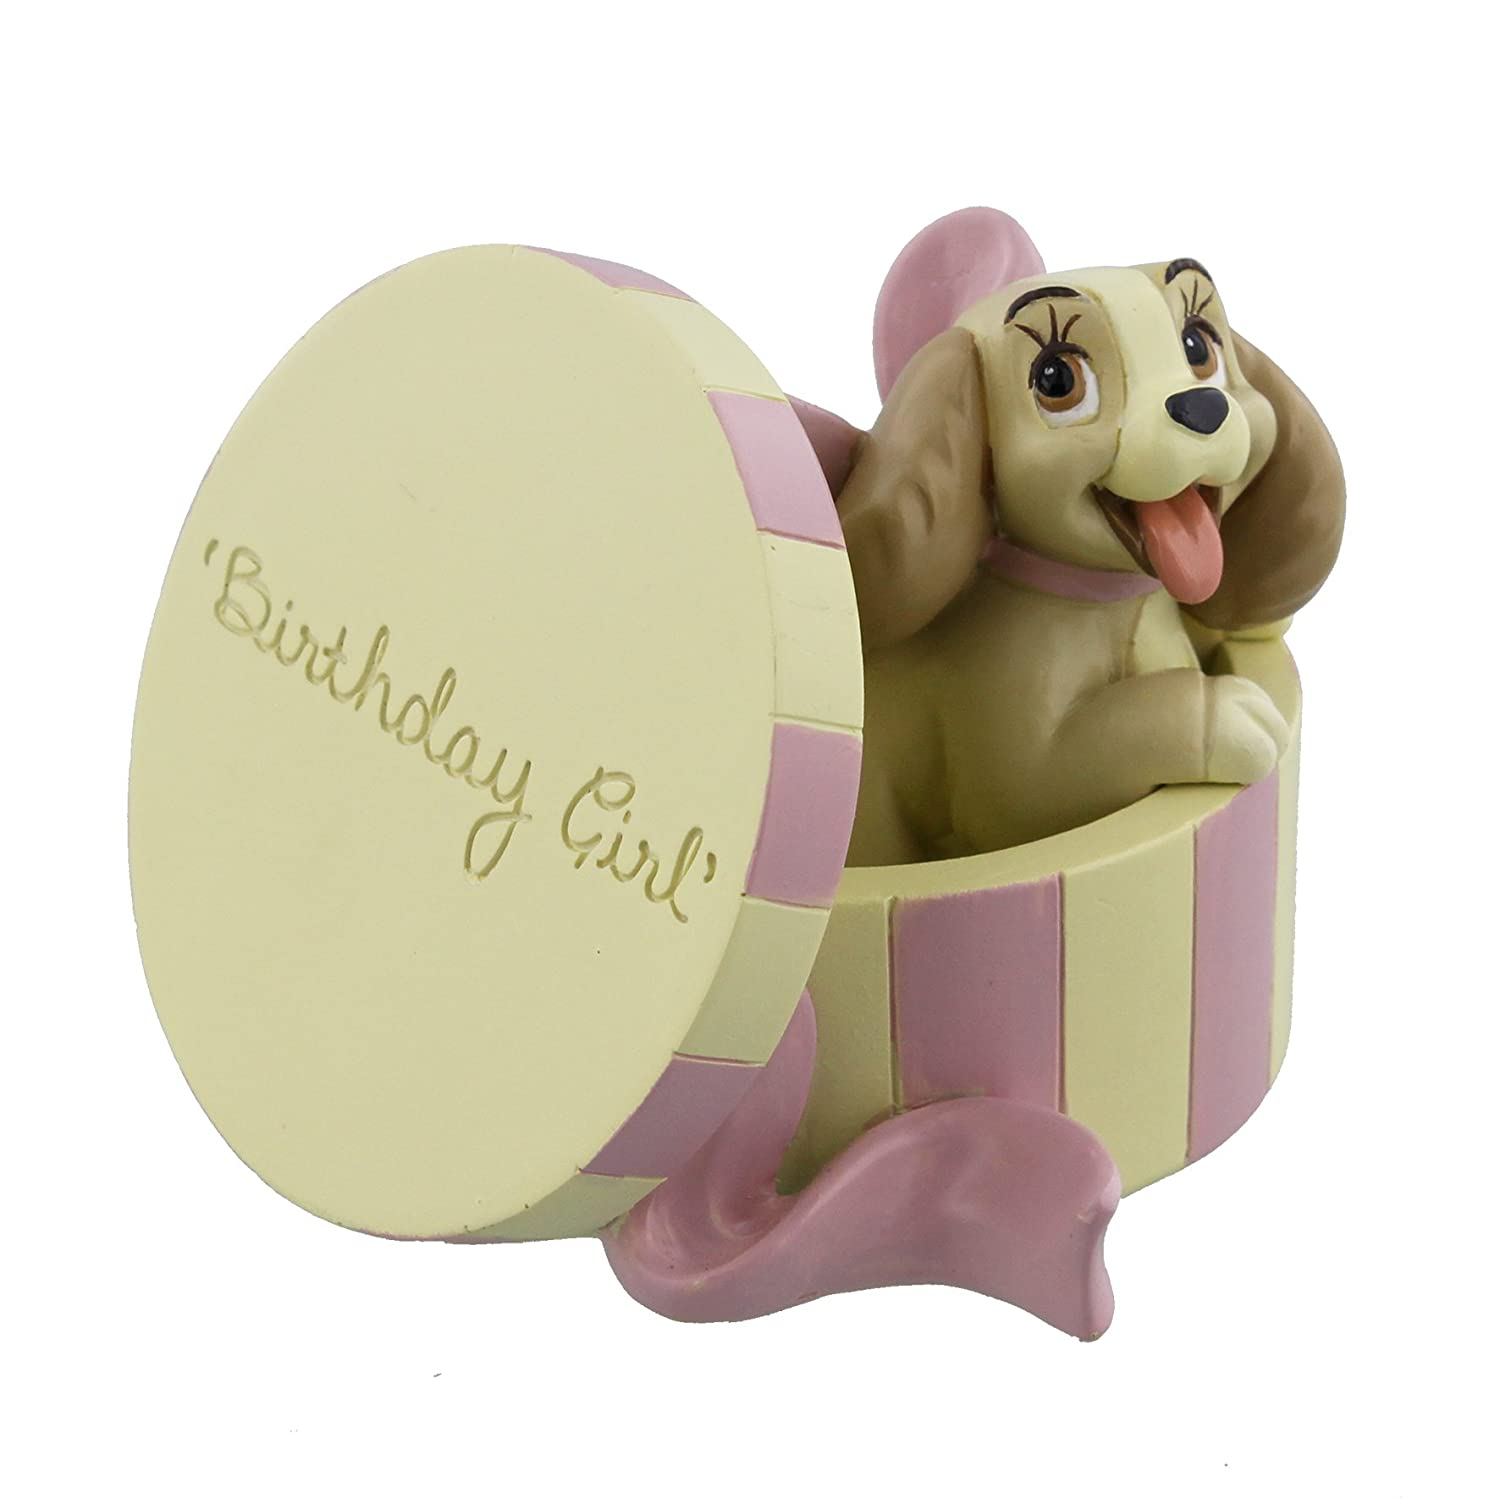 Disney Classics Lady In Hat Box Birthday Girl Figurine 8cm Boxed New - Magical Moments DI183 ukgiftstoreonline